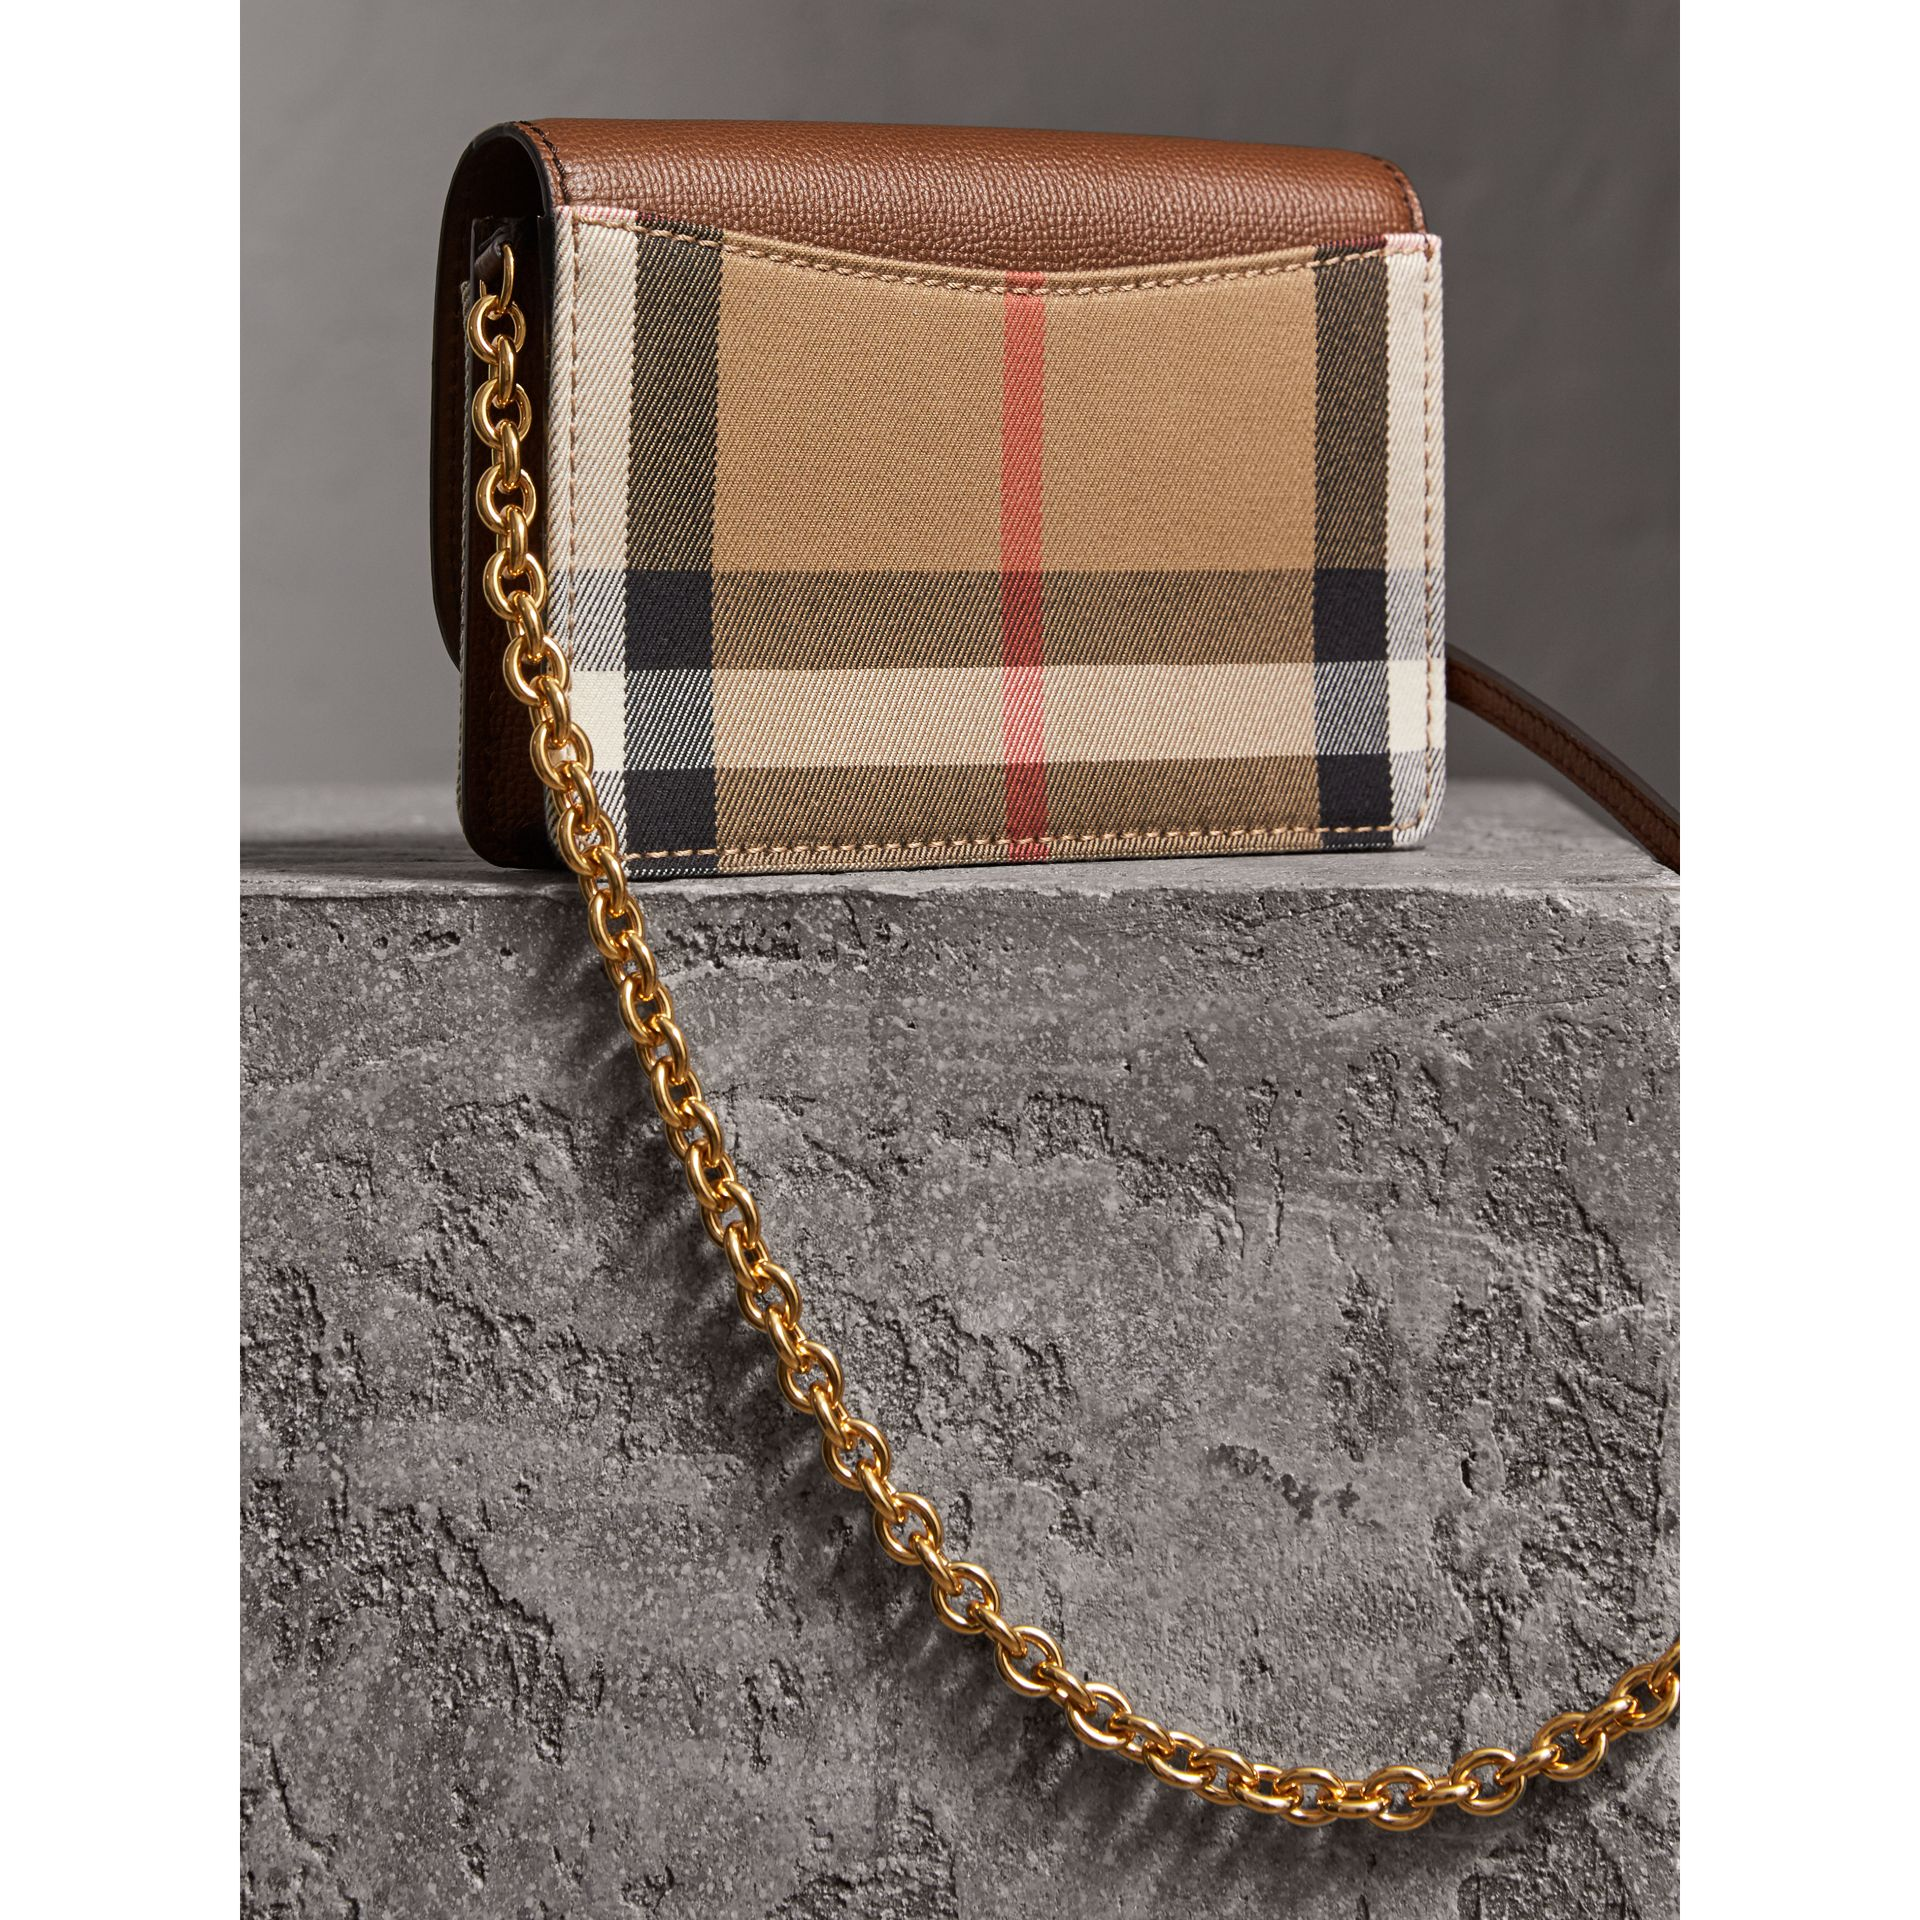 Leather and House Check Wallet with Detachable Strap in Tan - Women | Burberry United States - gallery image 4